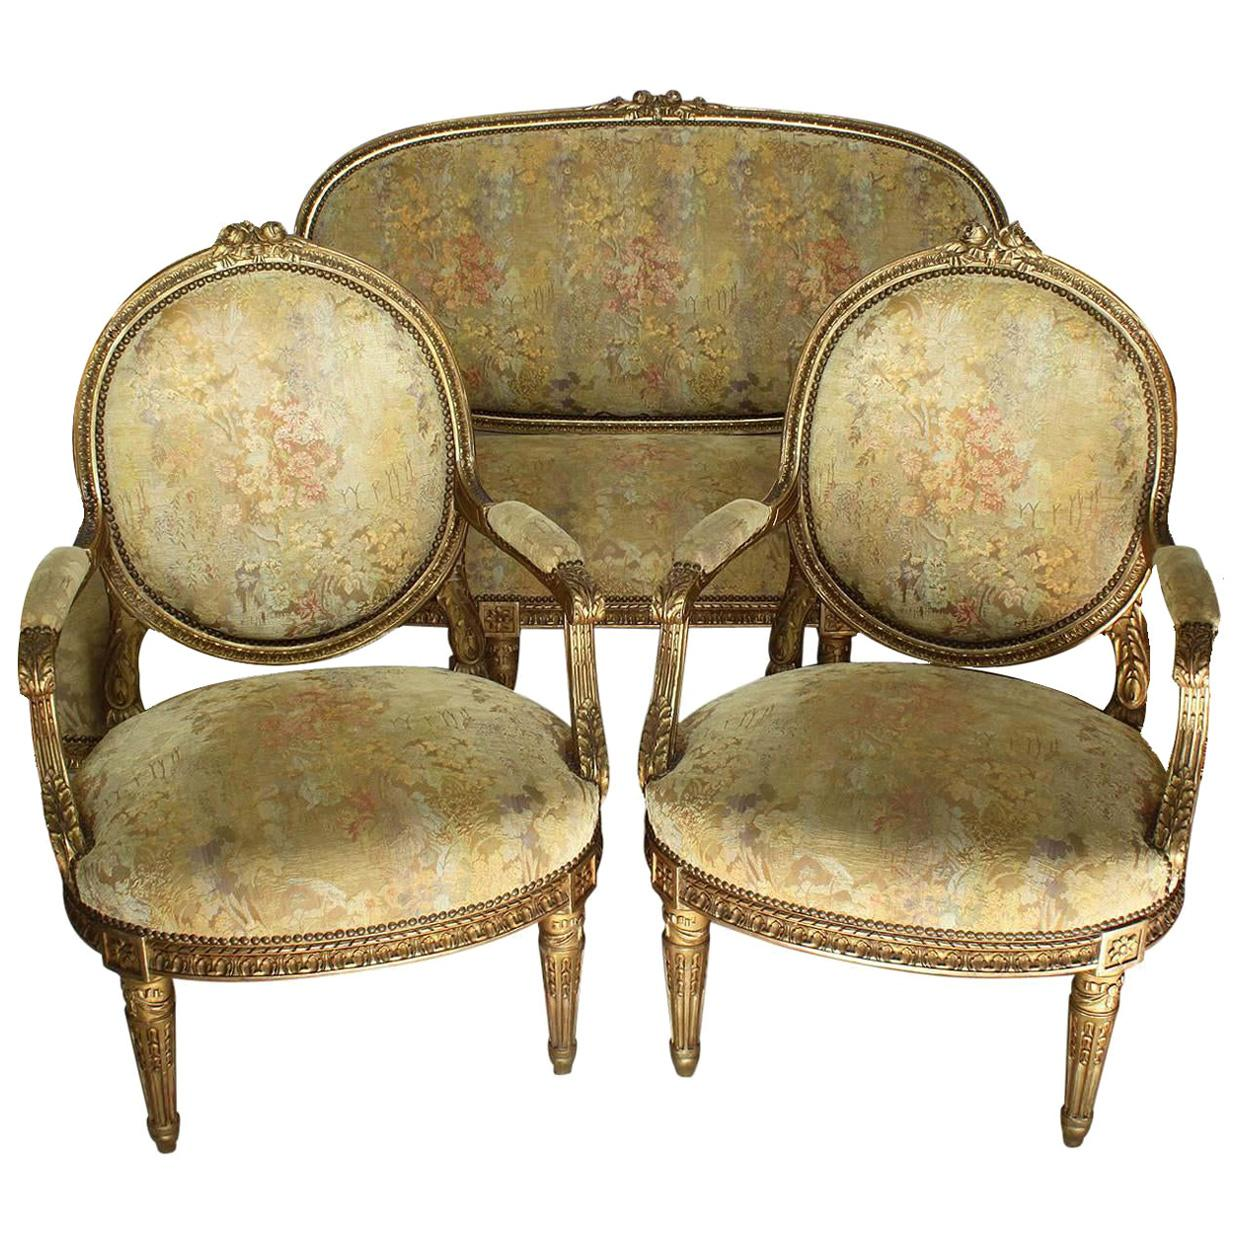 Fine French 19th Century Louis XVI Style Giltwood Carved Three-Piece Salon Suite